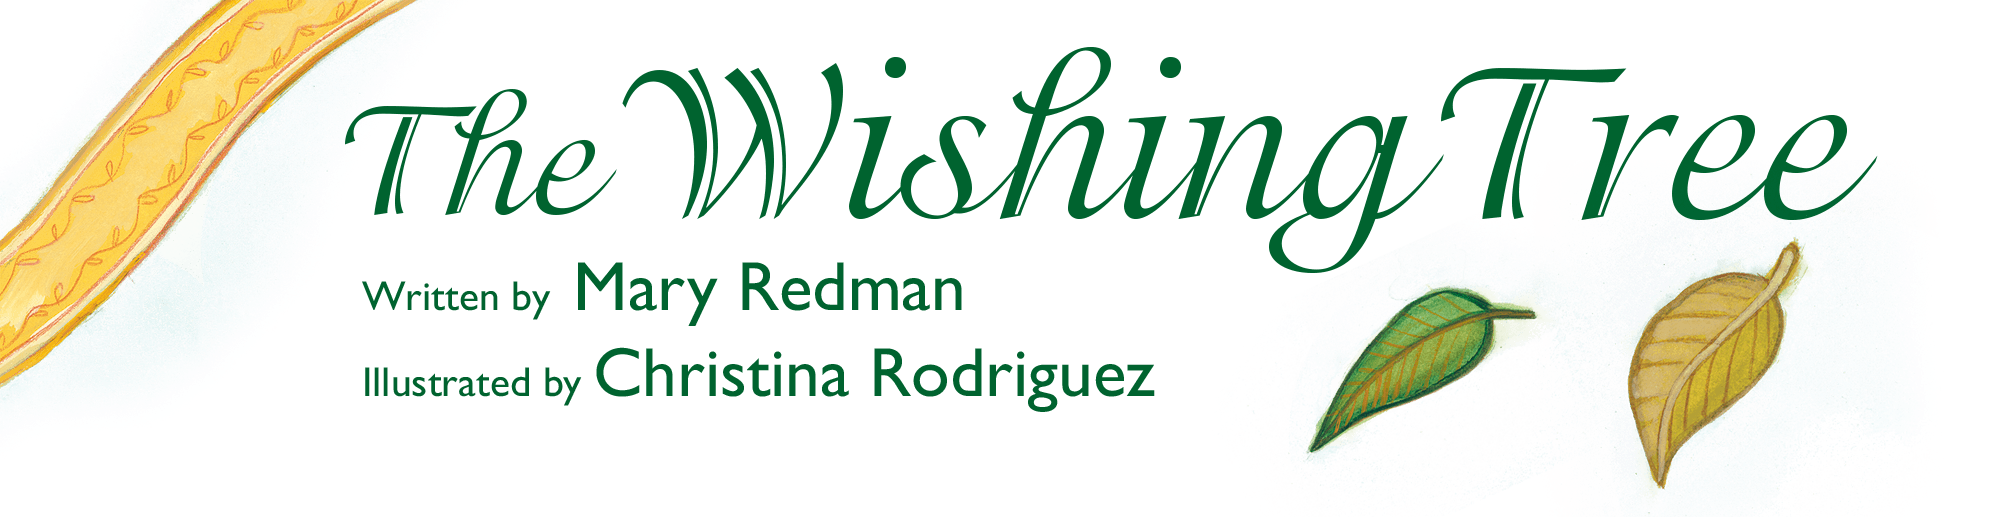 The Wishing Tree by Mary Redman, Illustrated by Christina Rodriguez